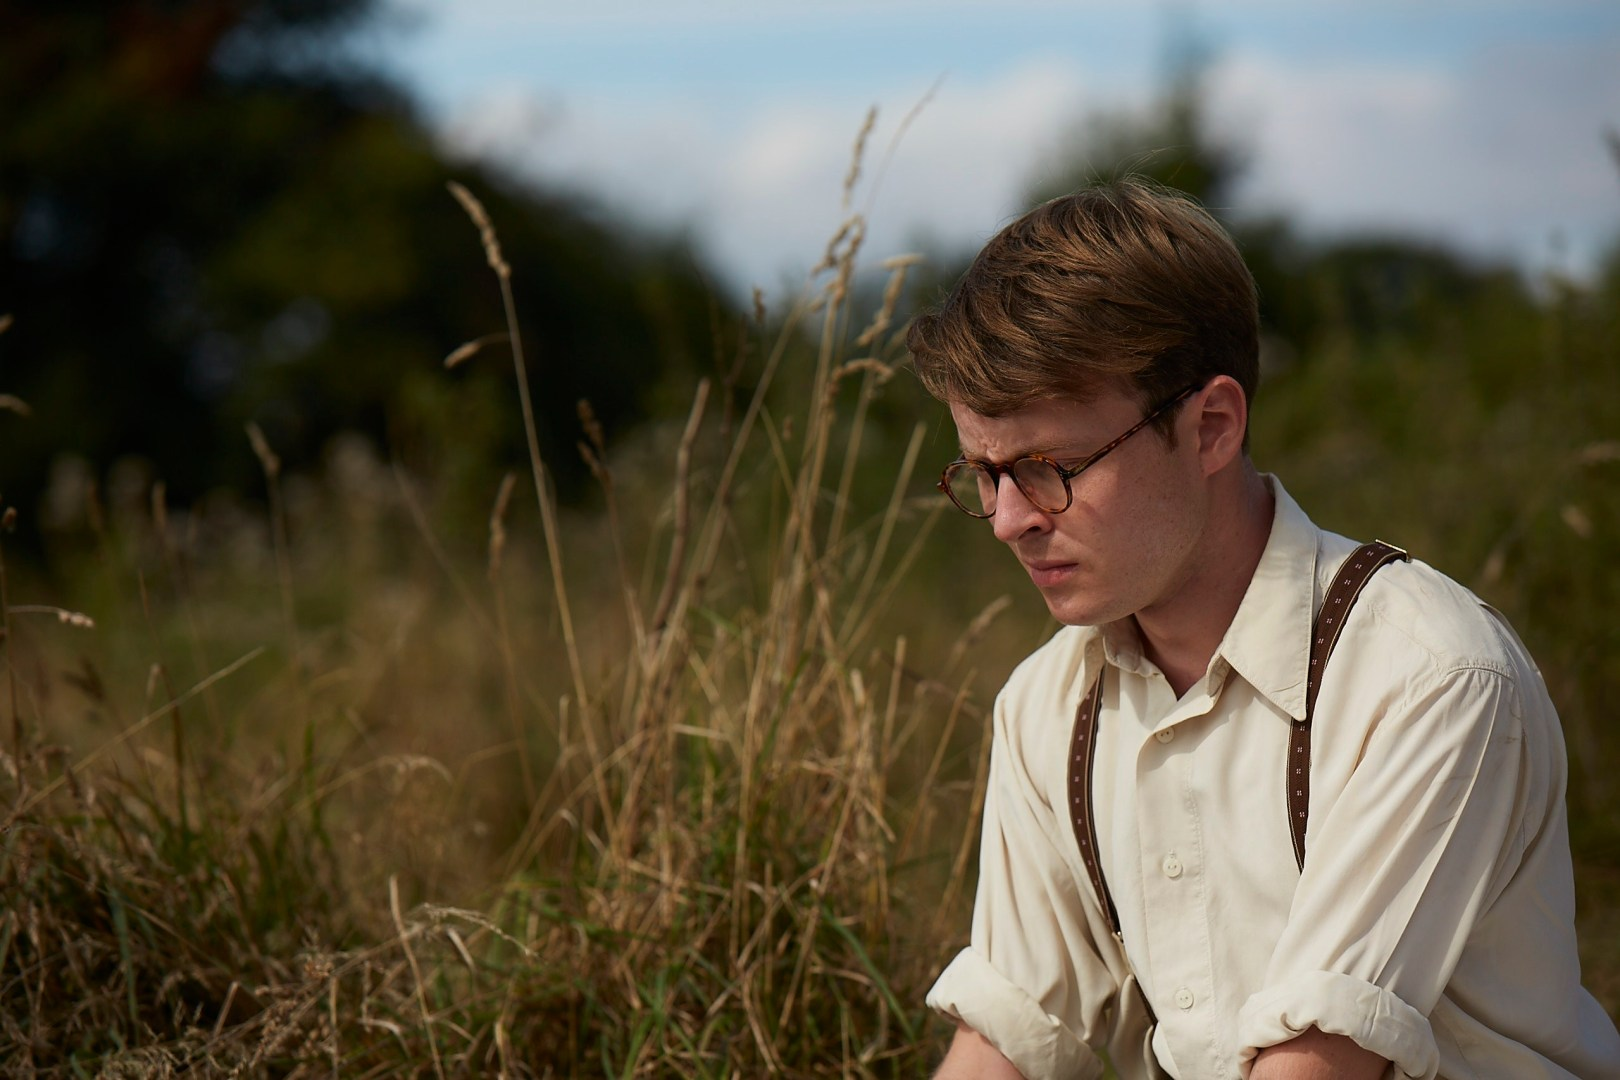 RADIANT CIRCUS #ScreenGuide - Films in London today: MAKING NOISE QUIETLY at The David Lean (10 SEP).